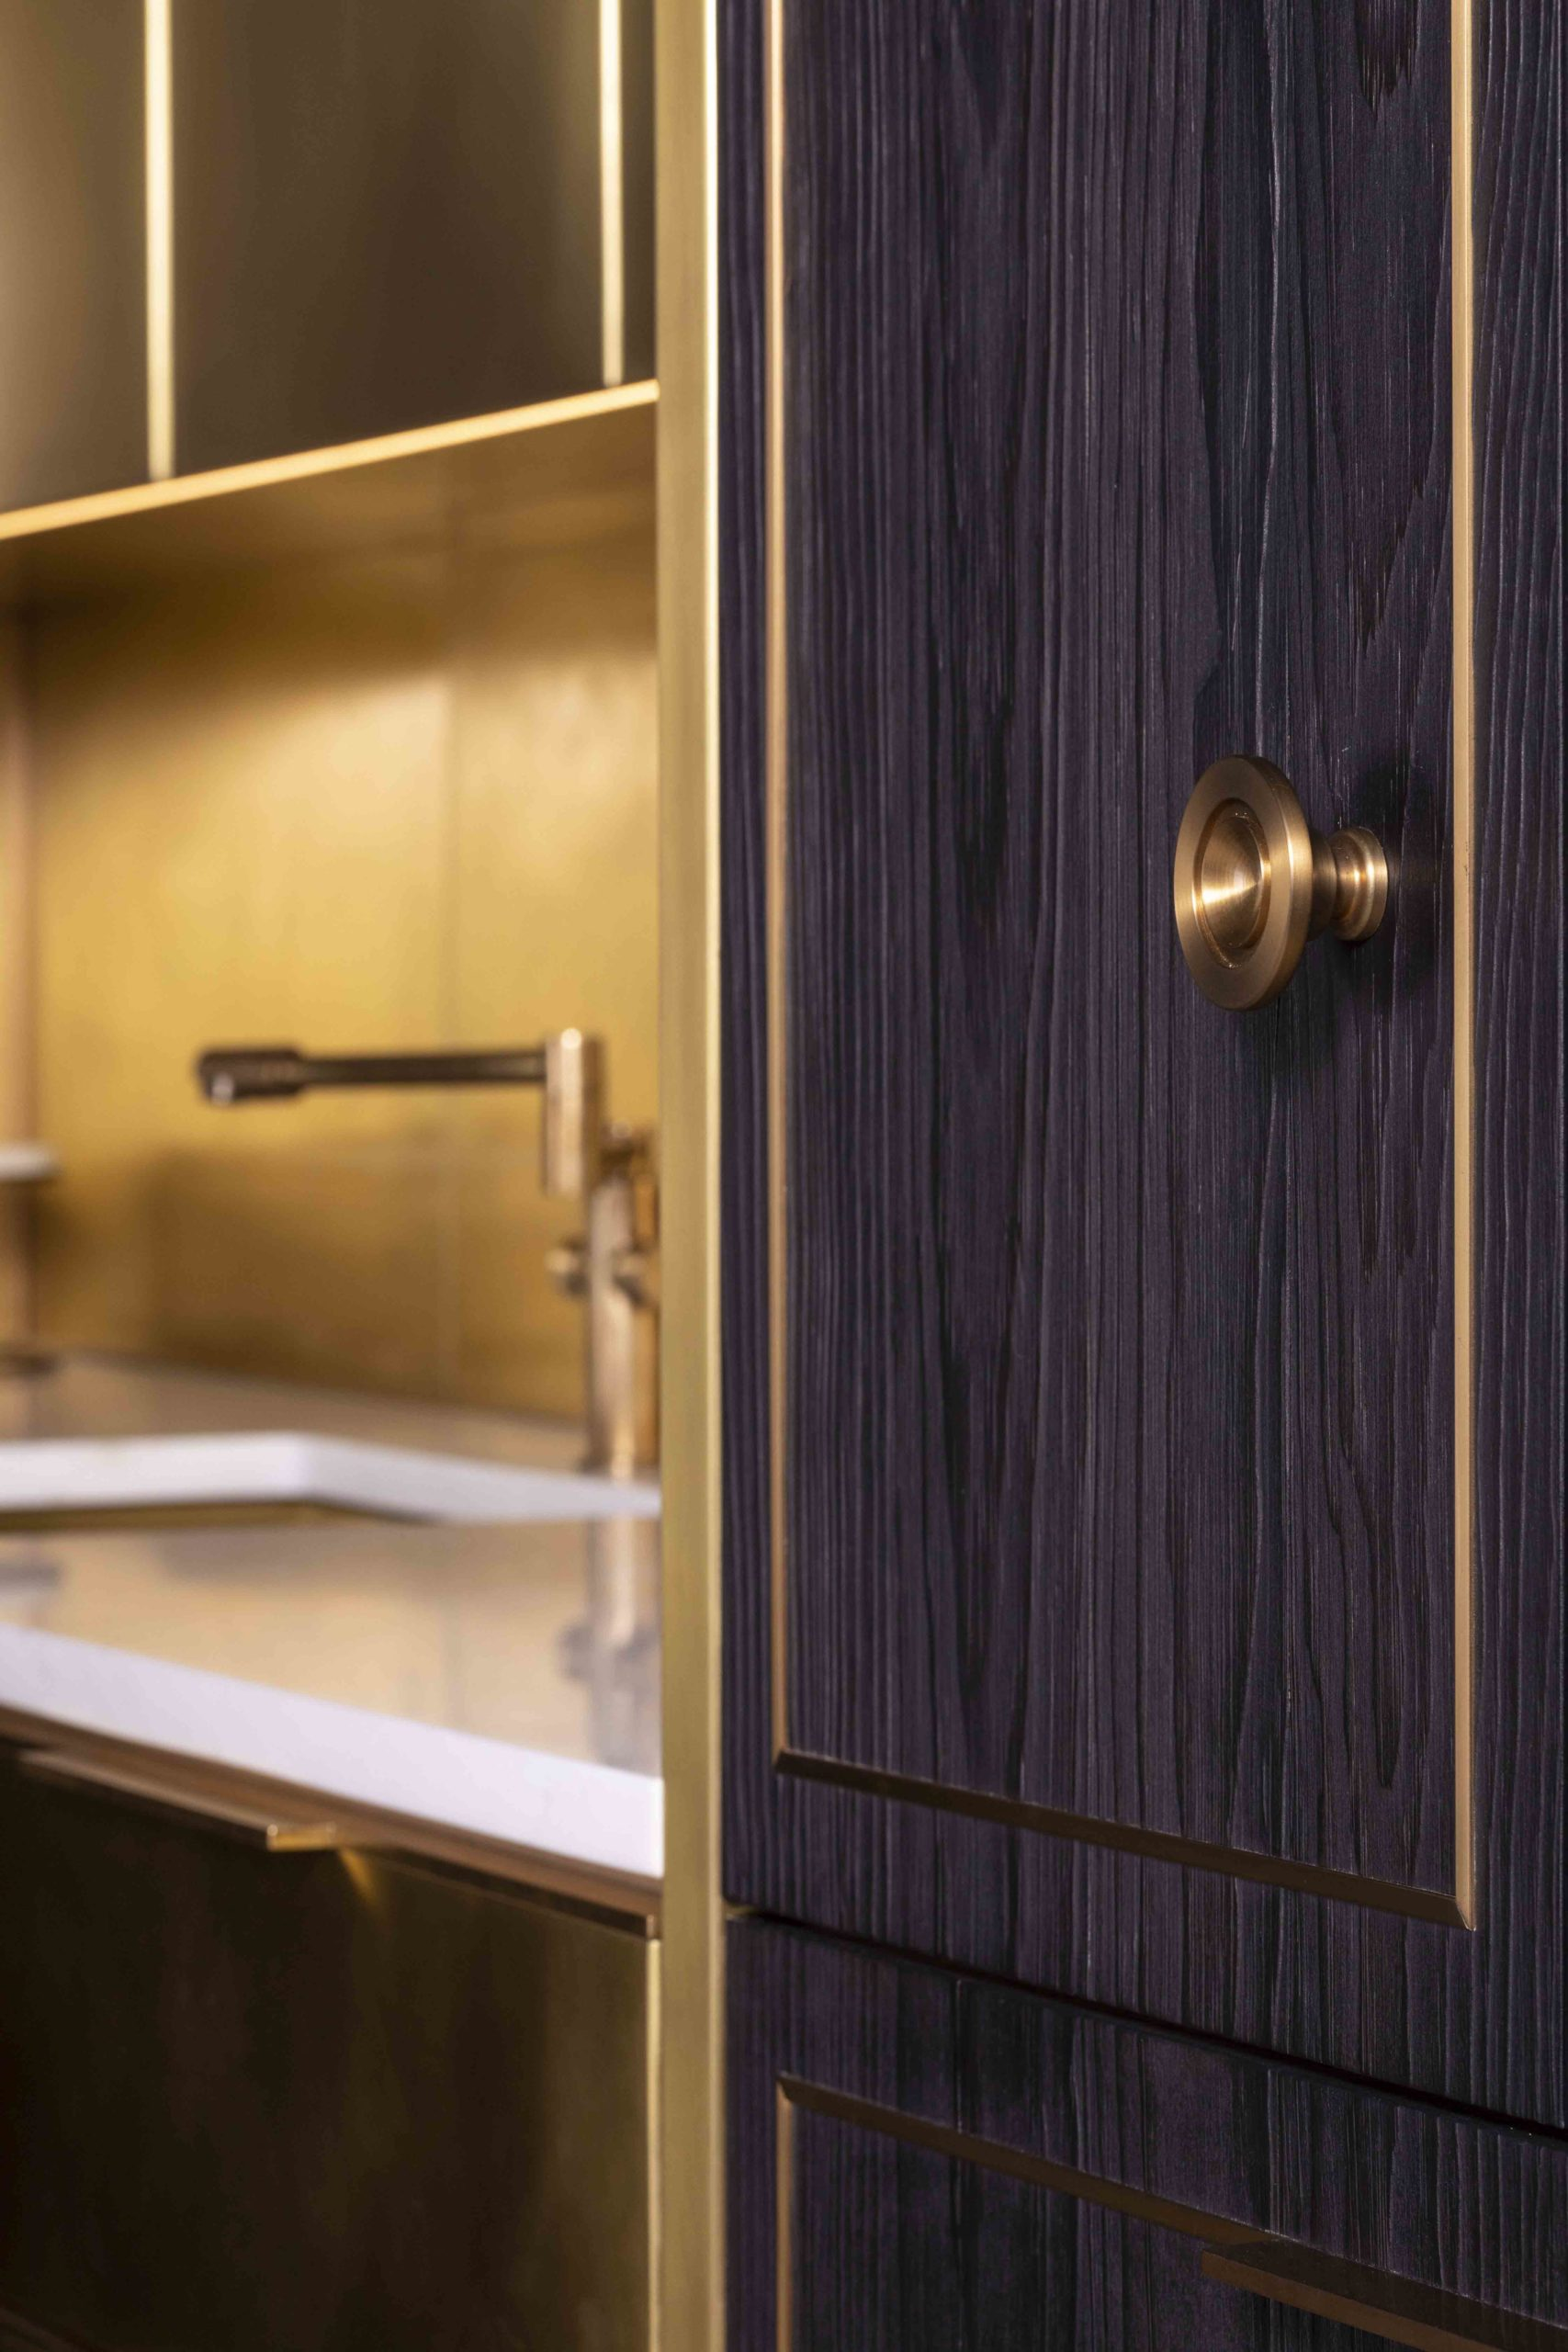 amuneal_products_WNWN_NYDC_4NYC-2019-Brass-Kitchen-Charred-pine-pantry-door-detail-5-nycsshowroom_nov19_0109-scaled-1